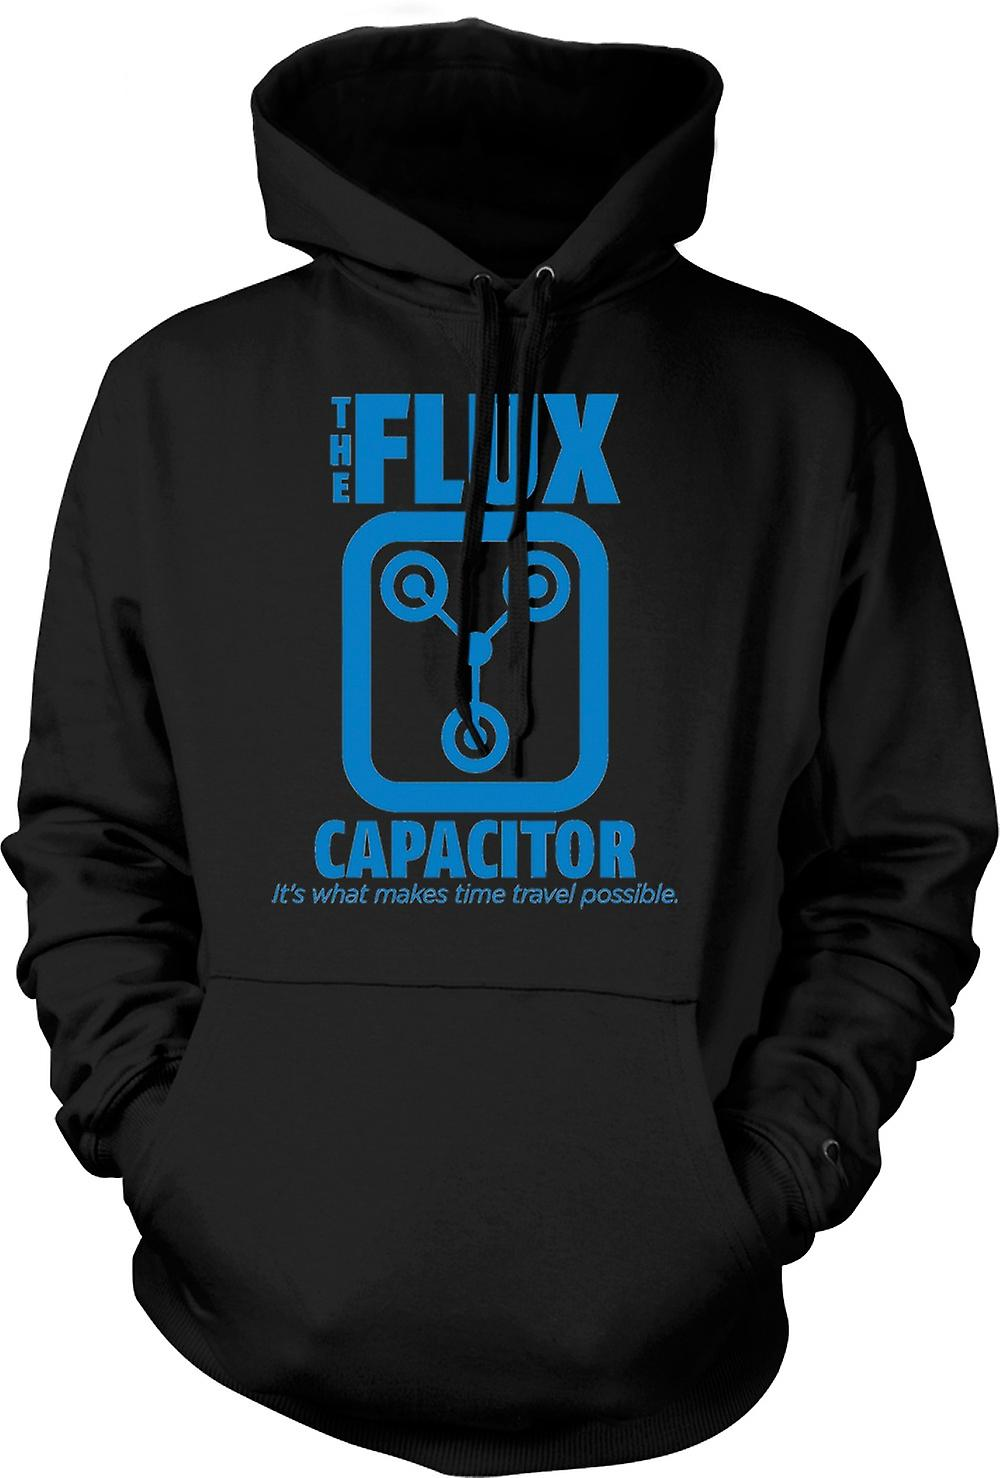 Mens Hoodie - The Flux Capacitor - Quote